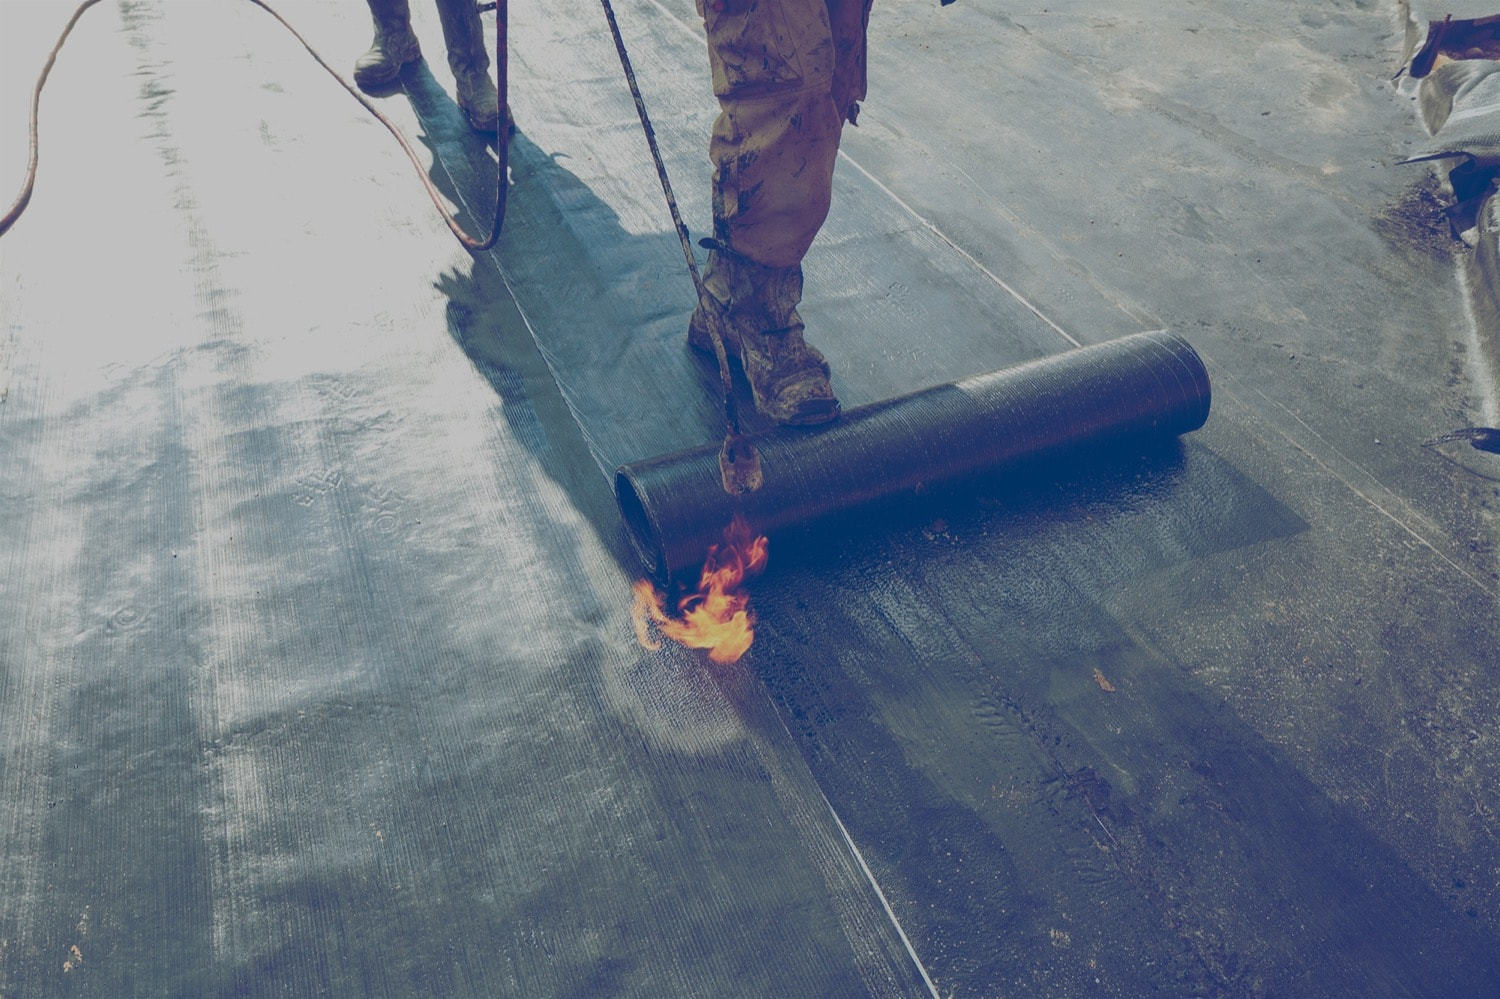 Construction worker using a hand-held propane torch to heat bitumen to create a waterproof seal on a roof.